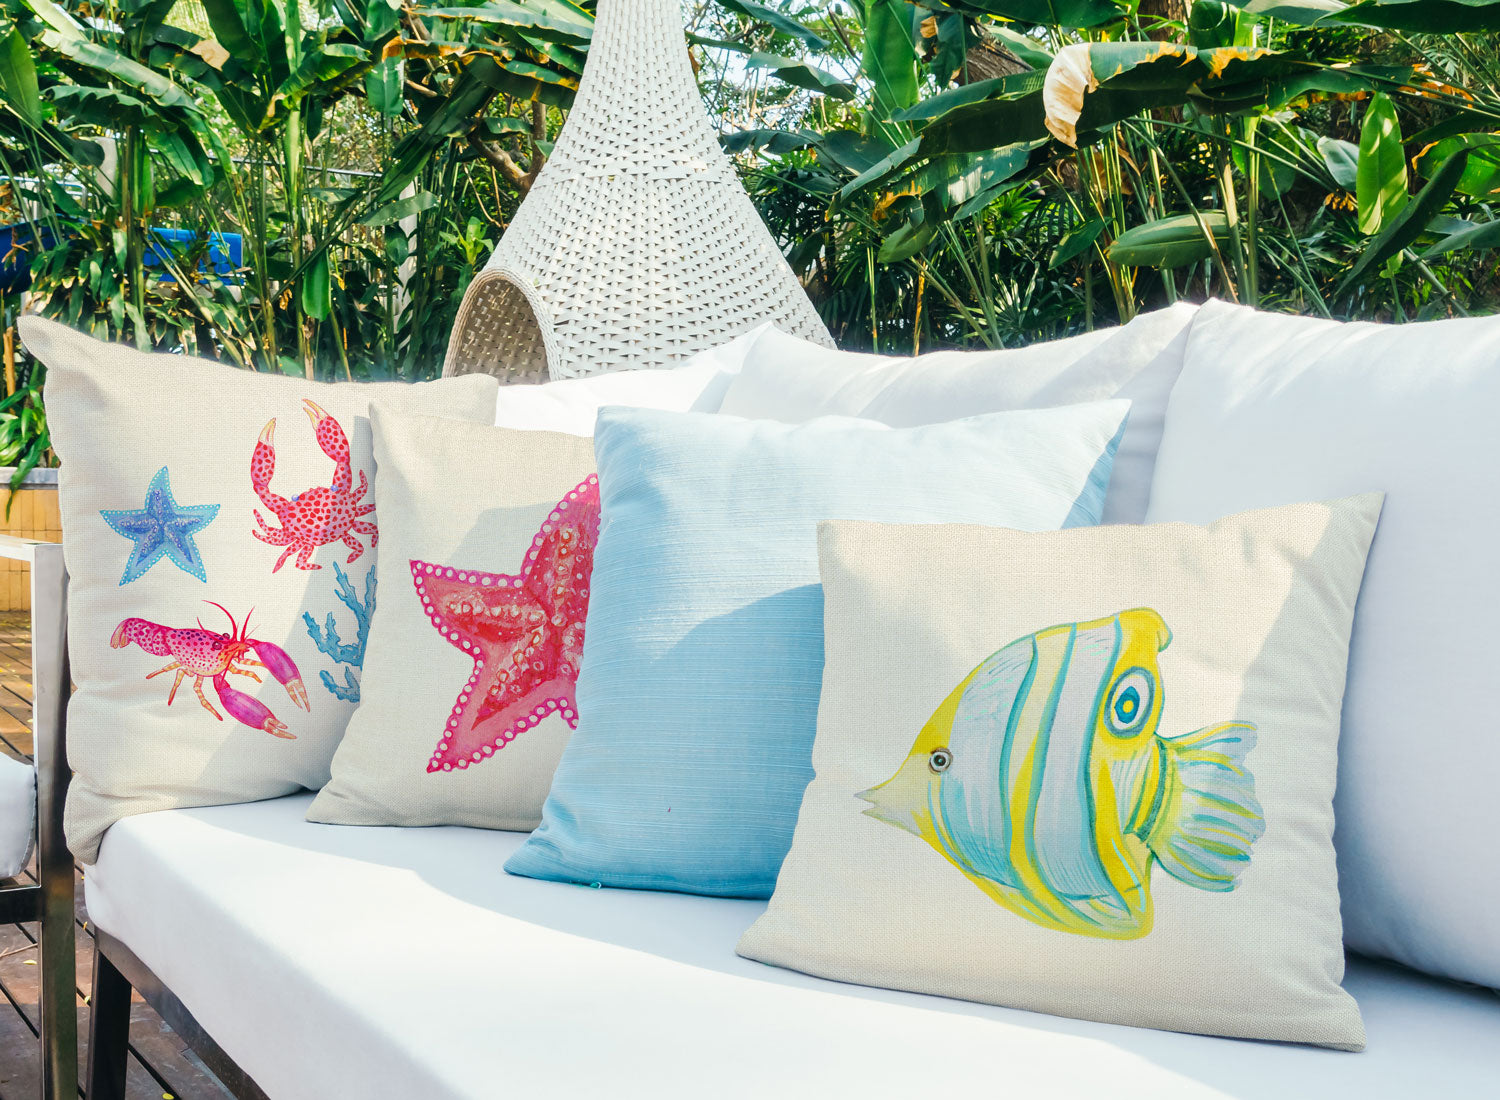 Butterflyfish Throw Pillow Cover - Coastal Designs Throw Pillow Cover Collection